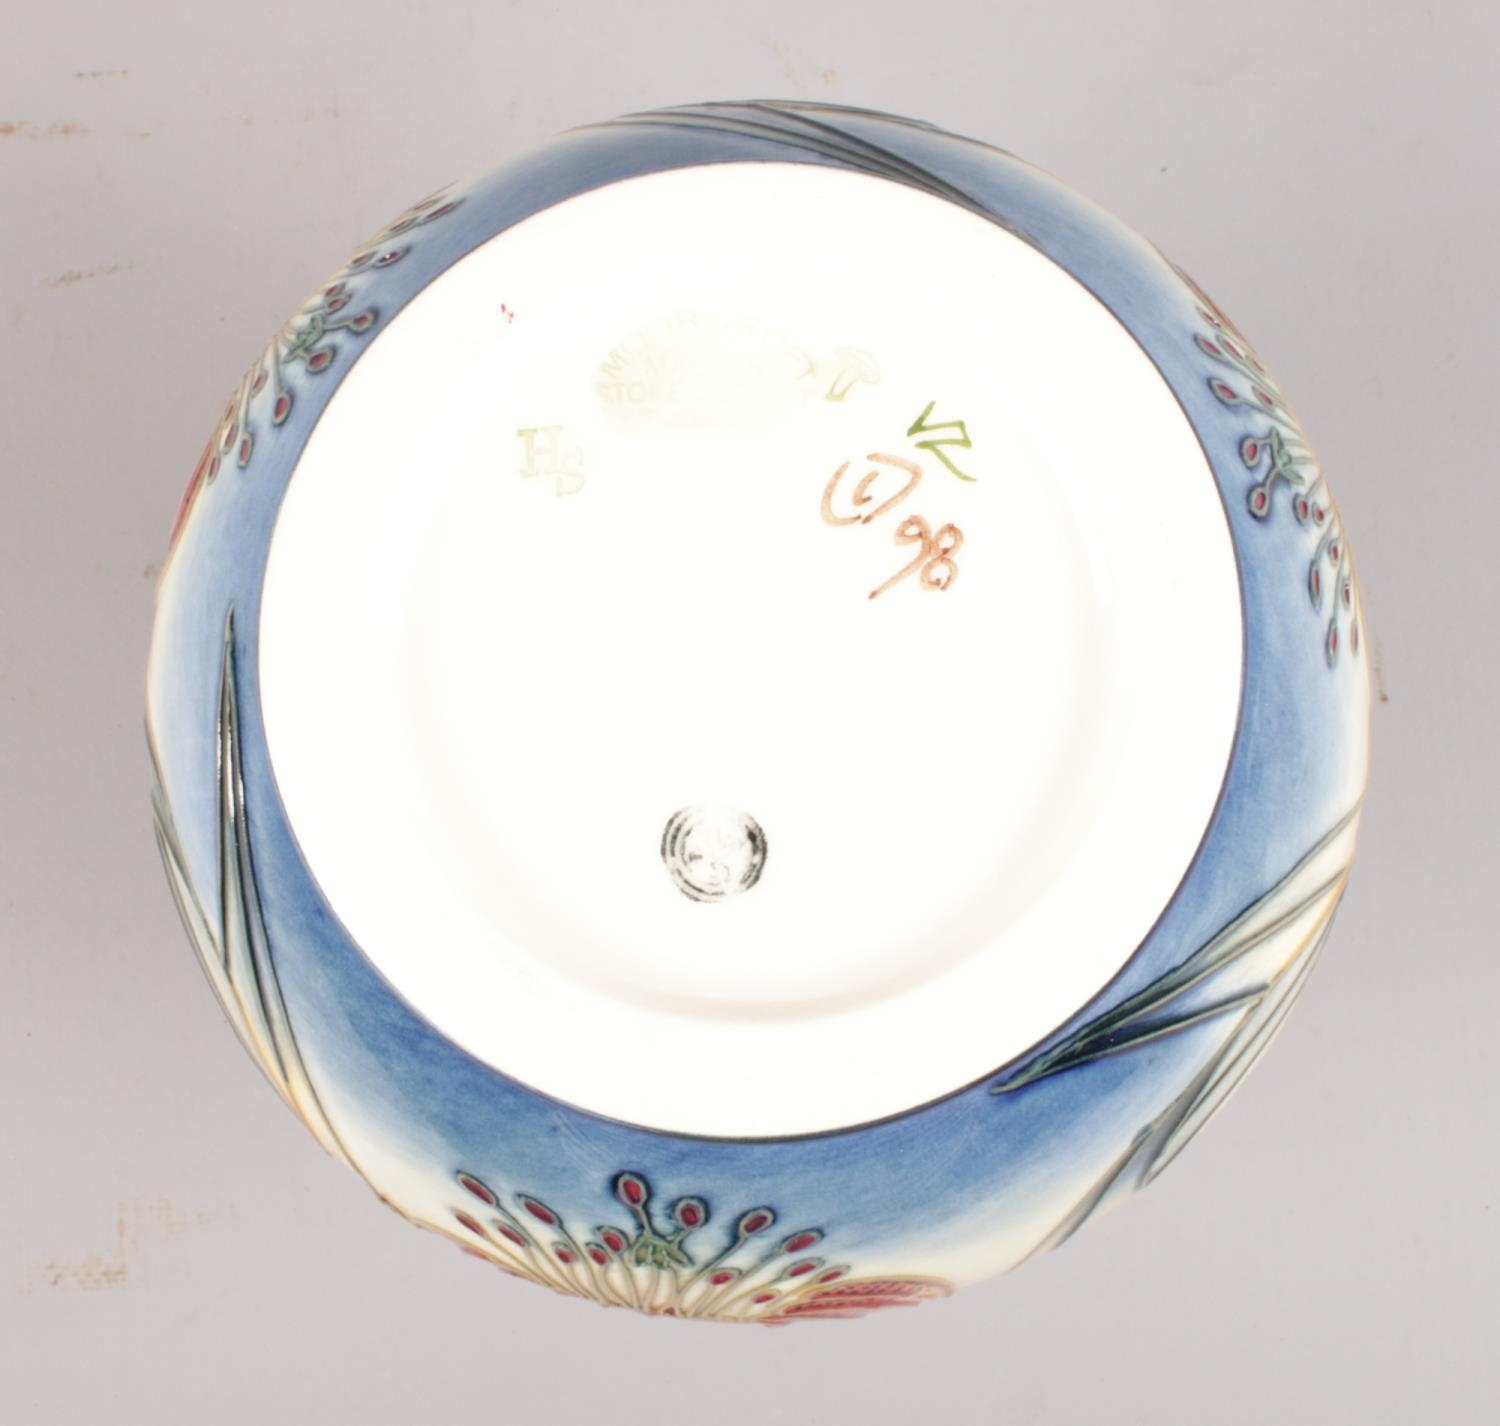 A Moorcroft 'Anna Lily' vase: Designed by Nicola Slaney. H:16cm. (Unboxed) Condition good. No - Image 2 of 2